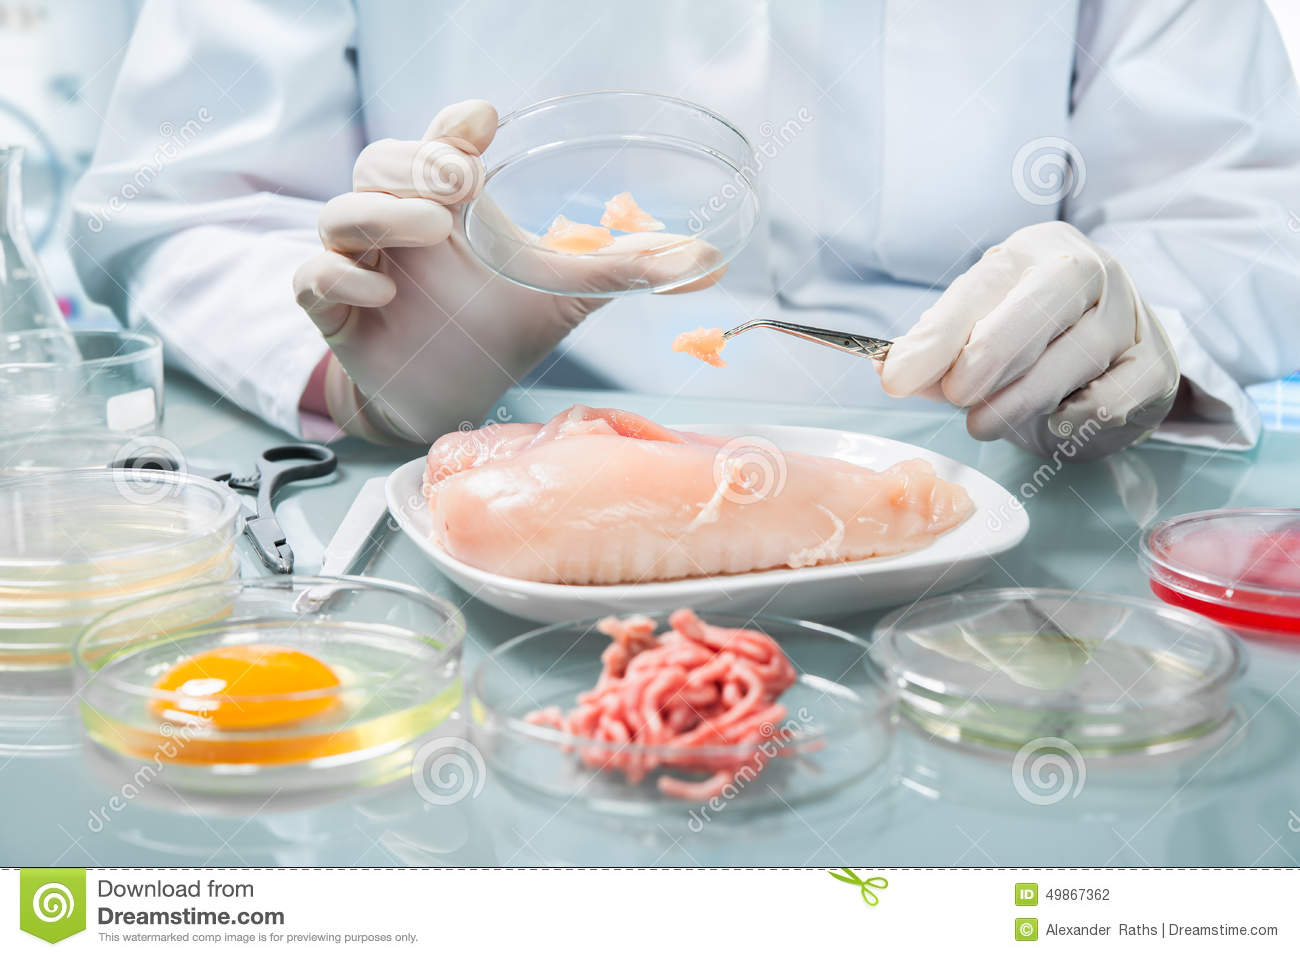 Food Safety Concept Stock Photo  Image 49867362